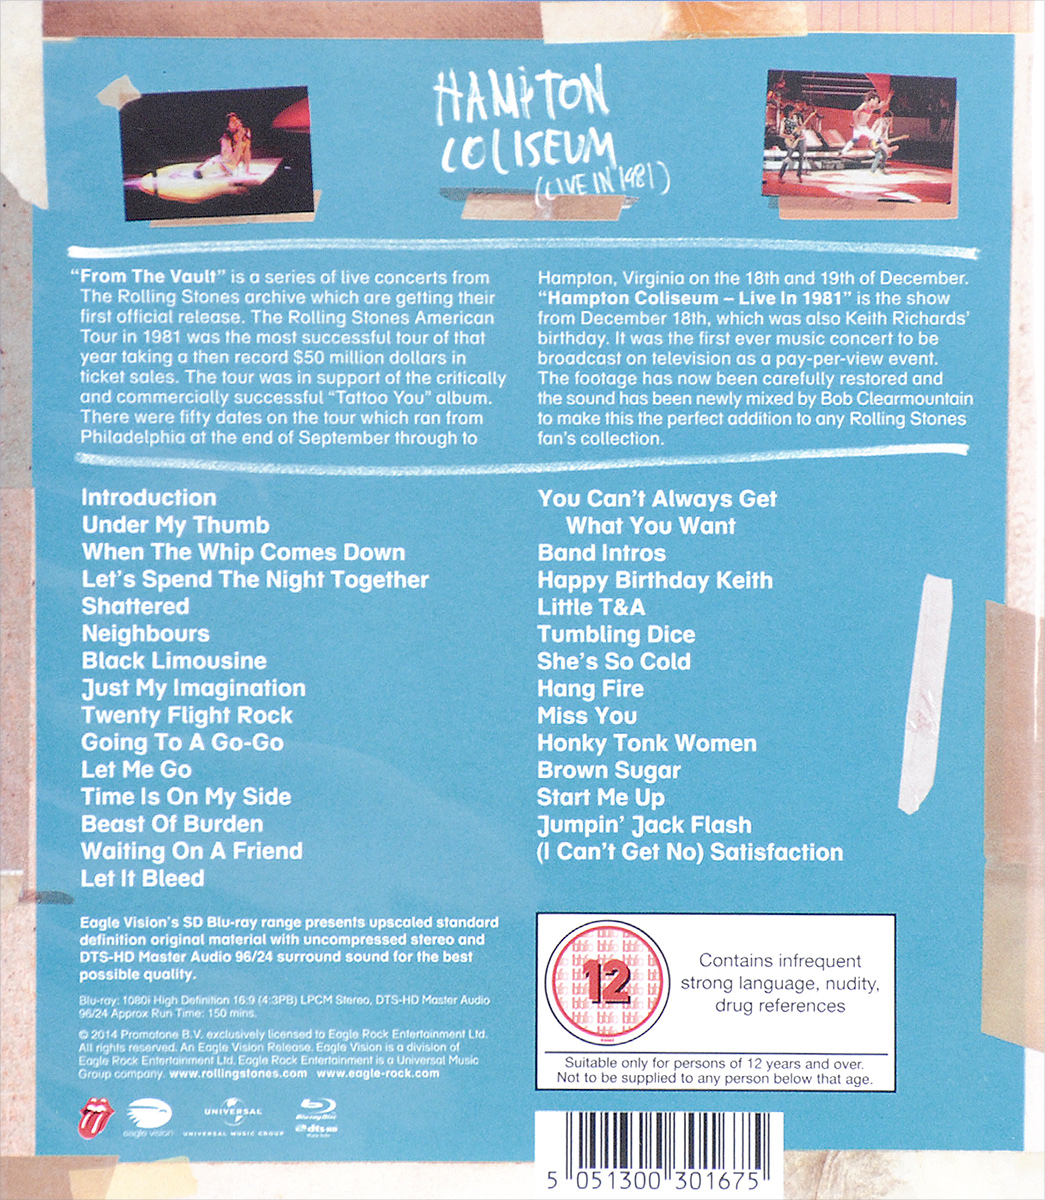 The Rolling Stones:  From The Vault Hampton Coliseum (Live In 1981) (Blu-ray) Promotone B.V.